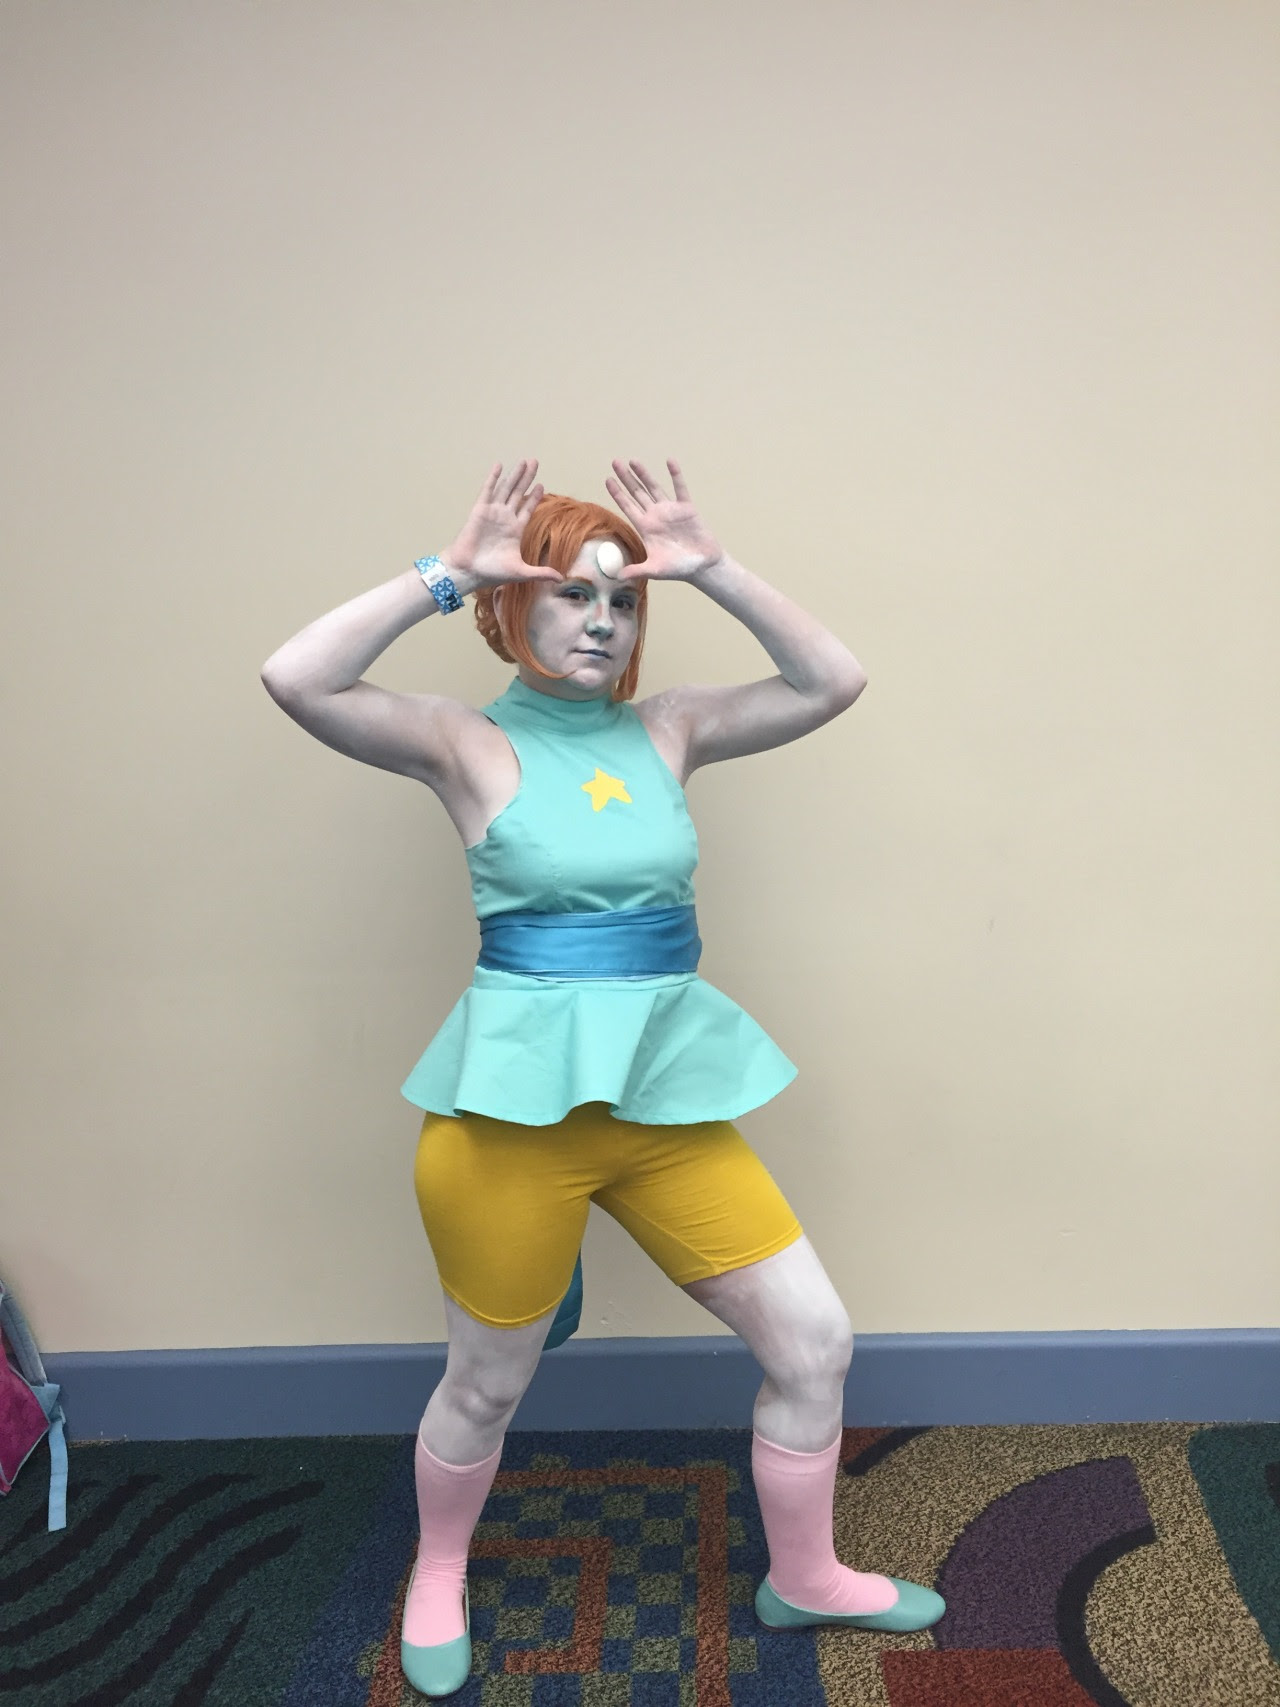 Finished Pearl cosplay! My makeup was a bit messed up but other than that I'm super happy with it!